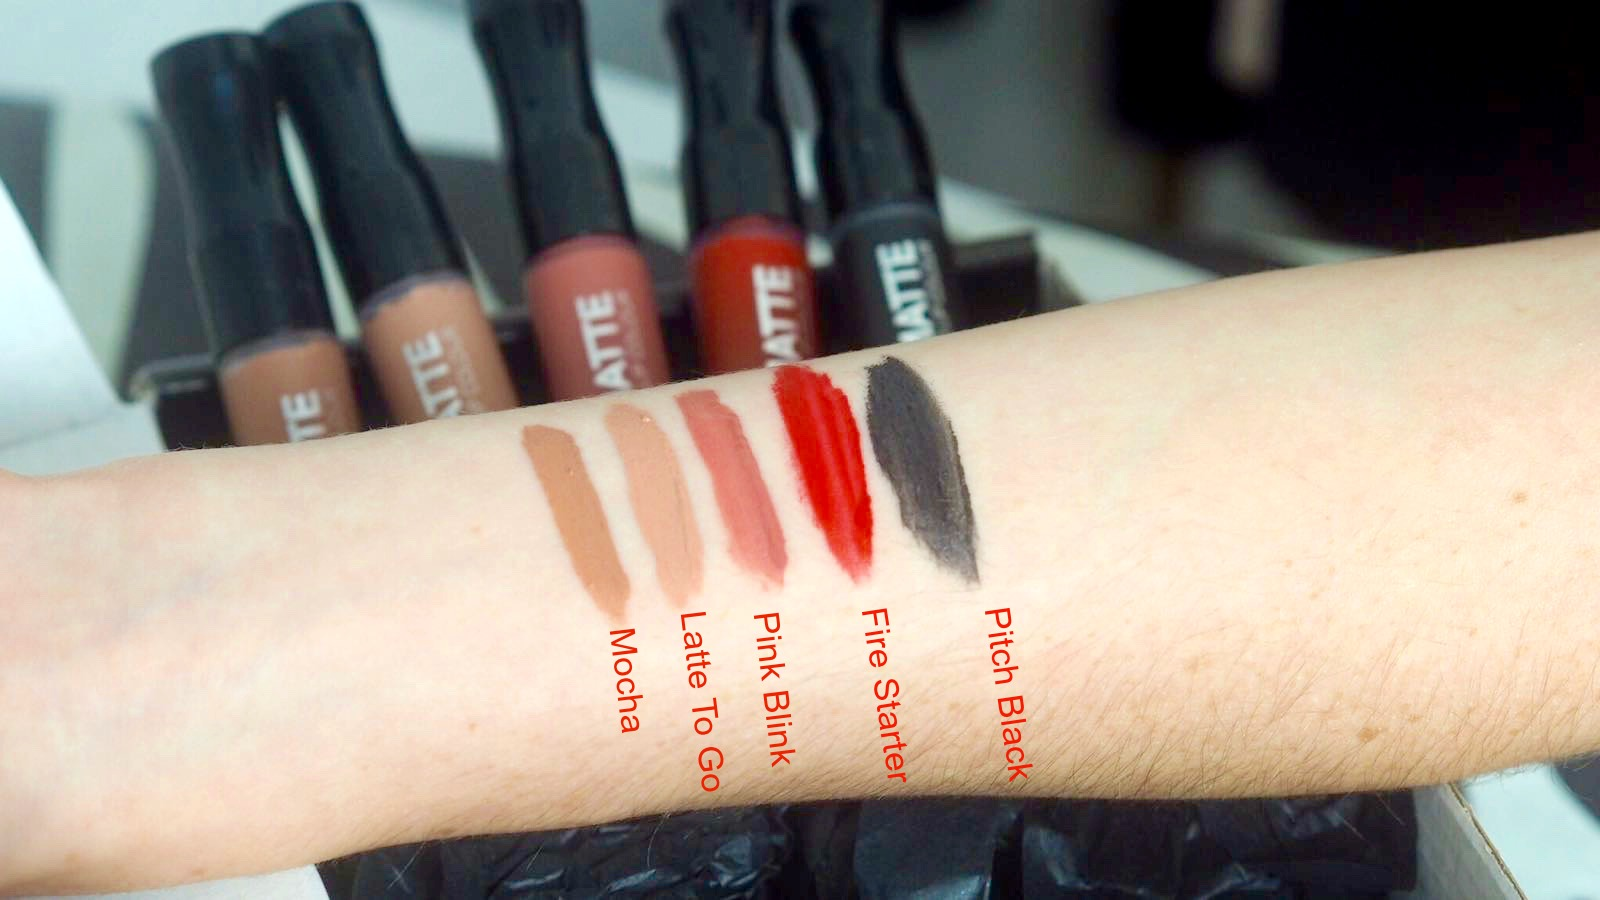 Rimmel Stay Matte Lipsticks